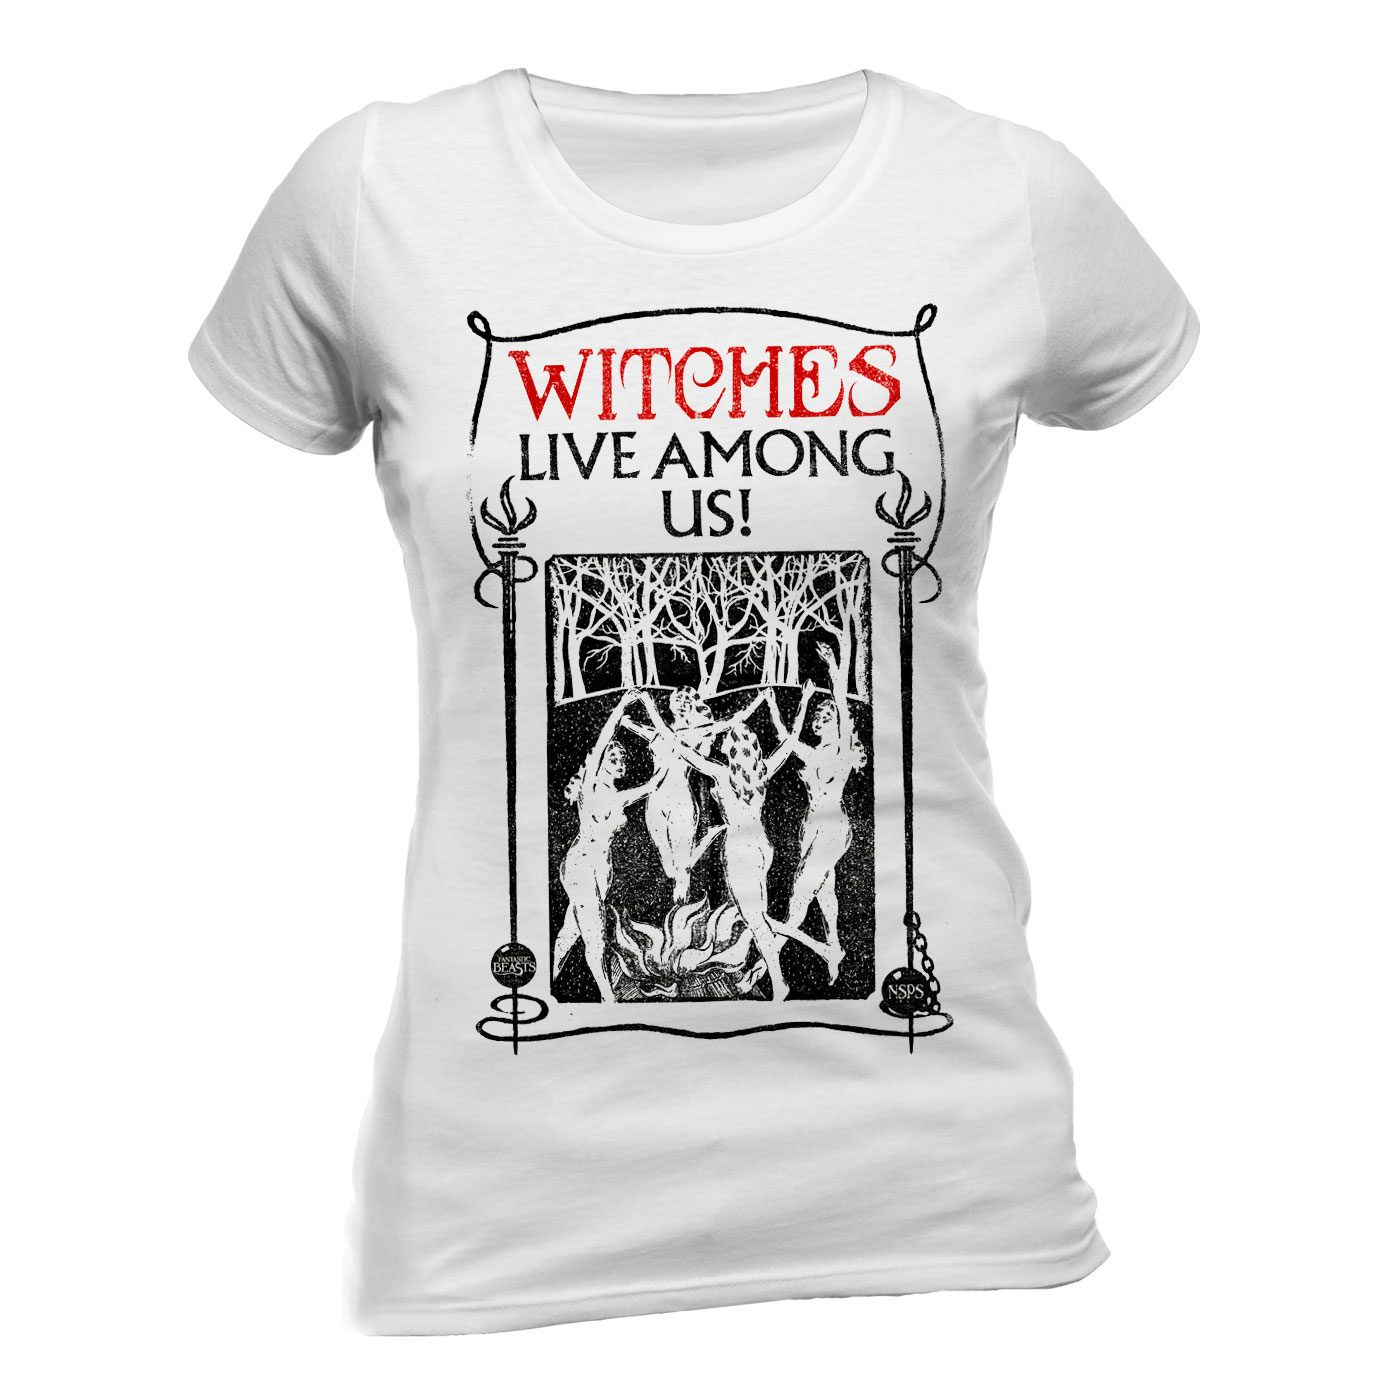 Fantastic Beasts Ladies T-Shirt Witches Size L